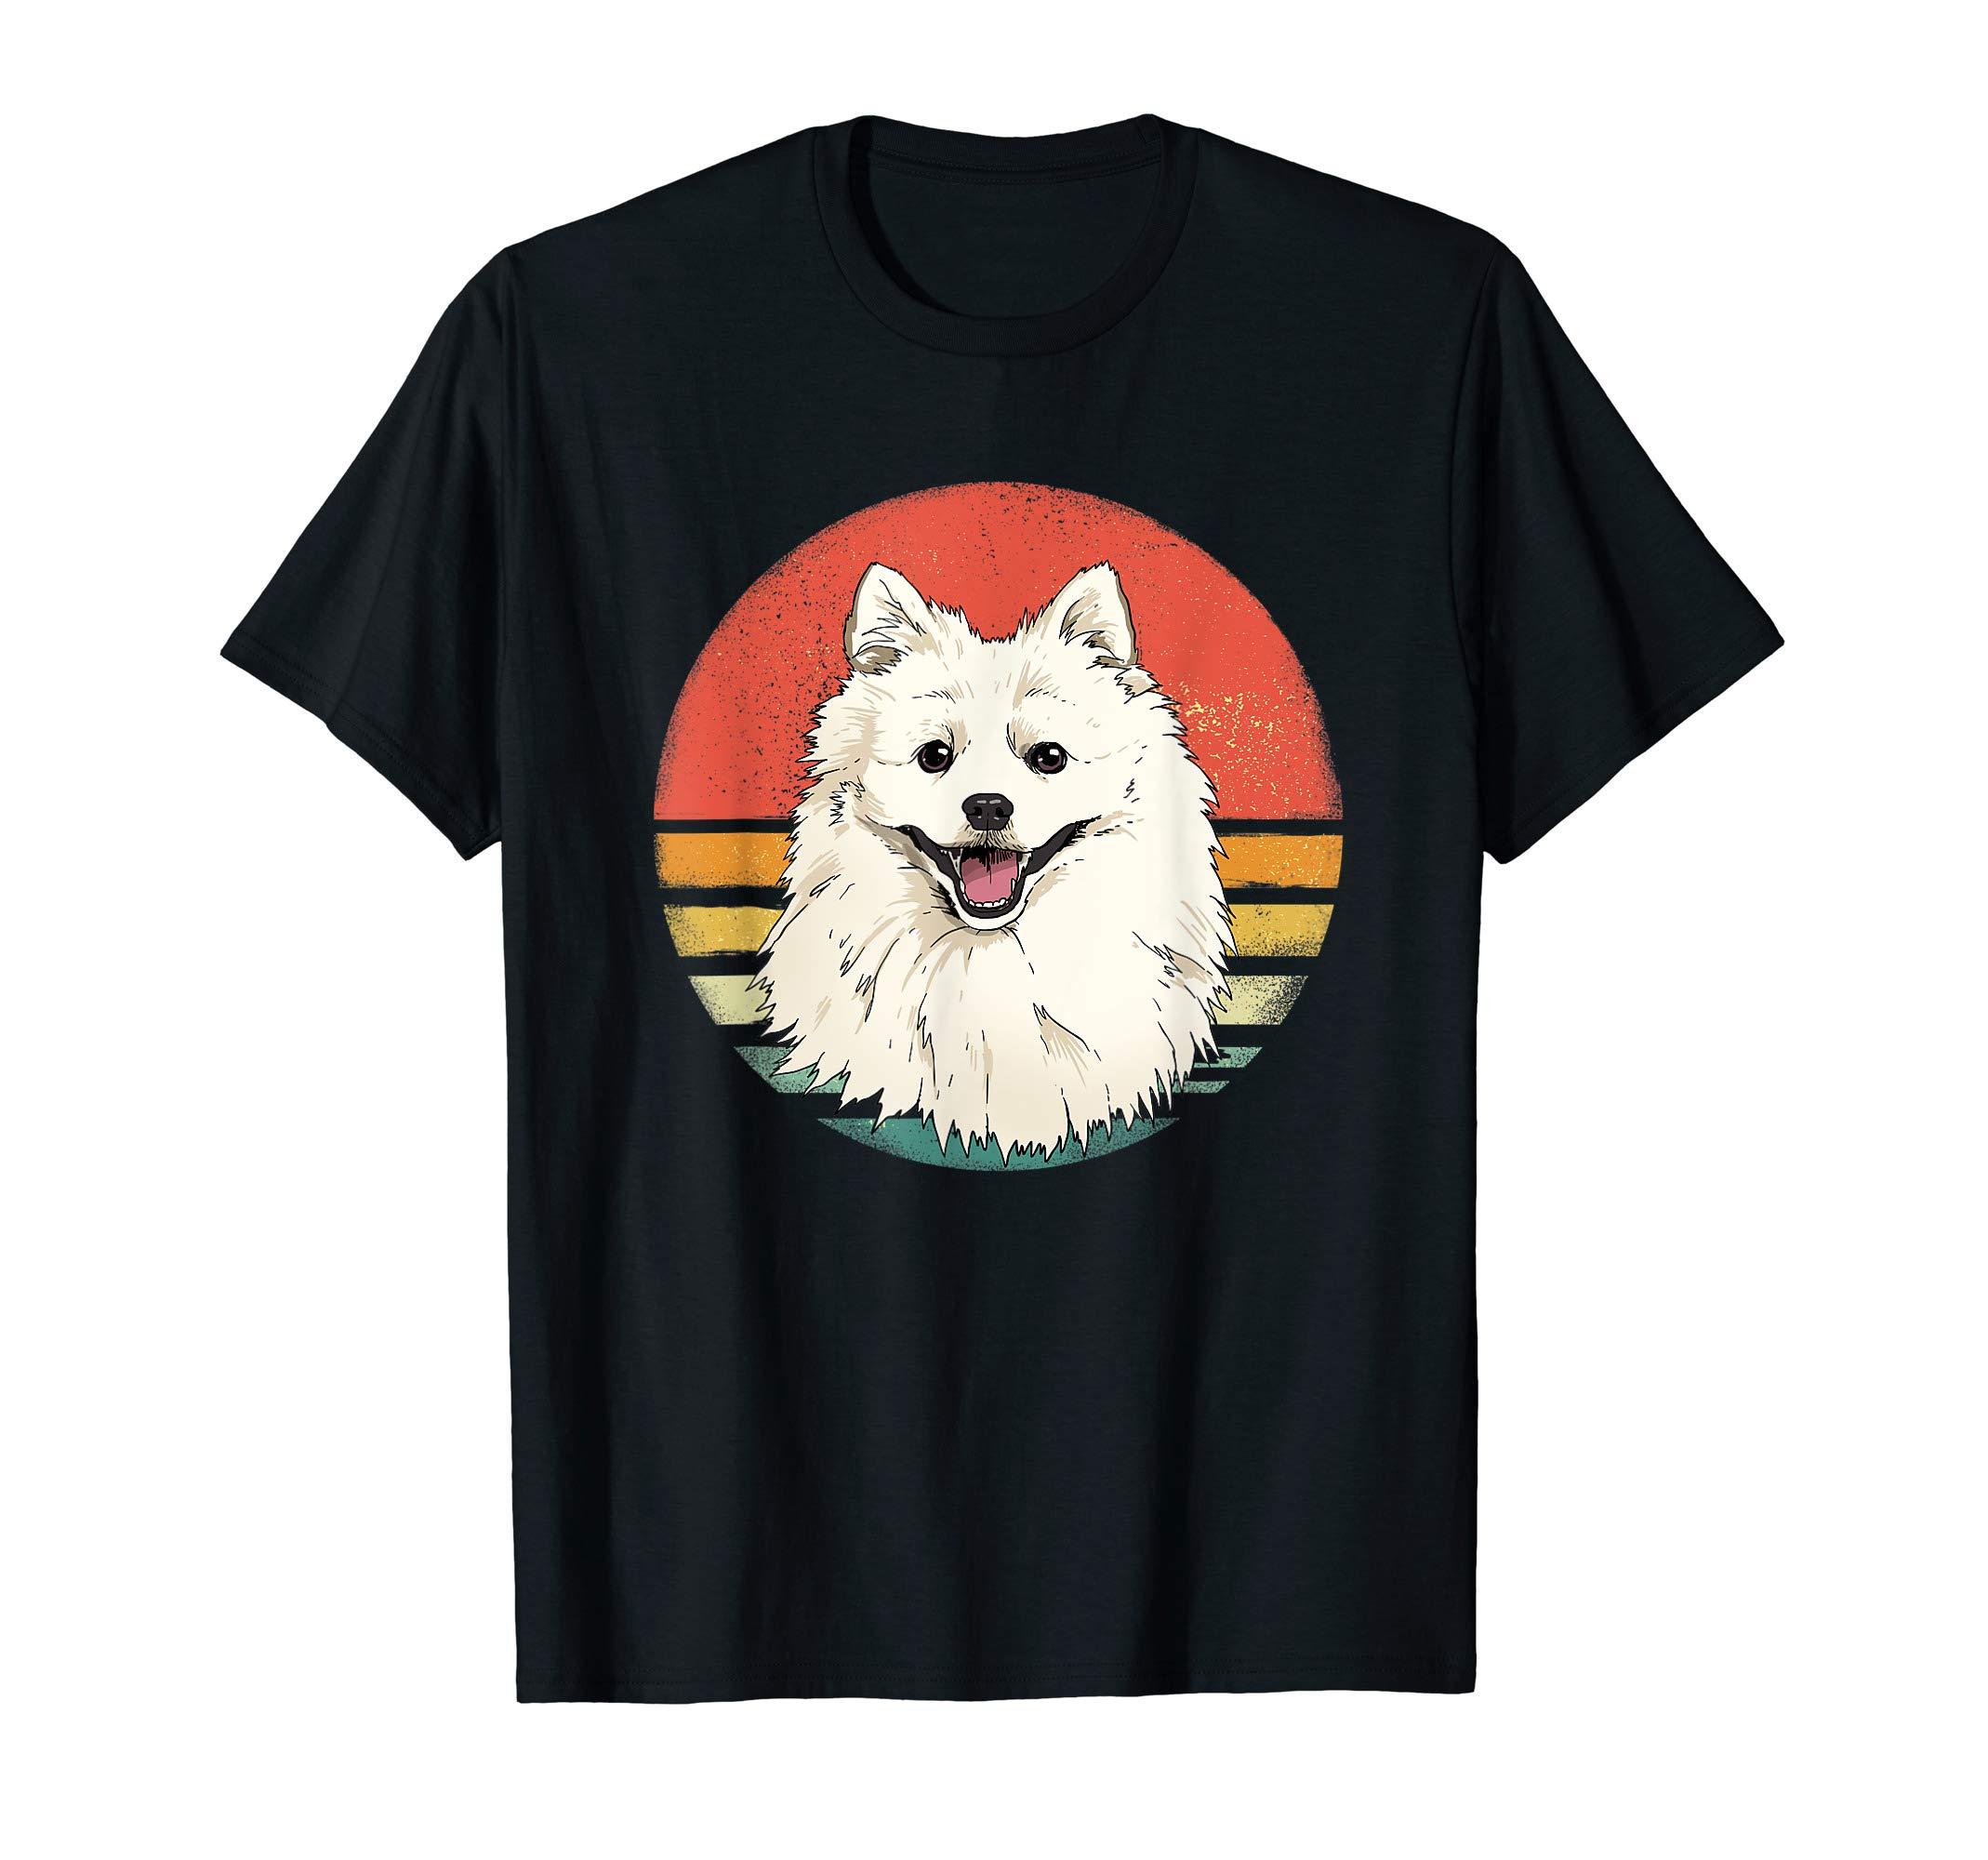 Retro Vintage American Eskimo Dog Breed Lover Gift T-Shirt